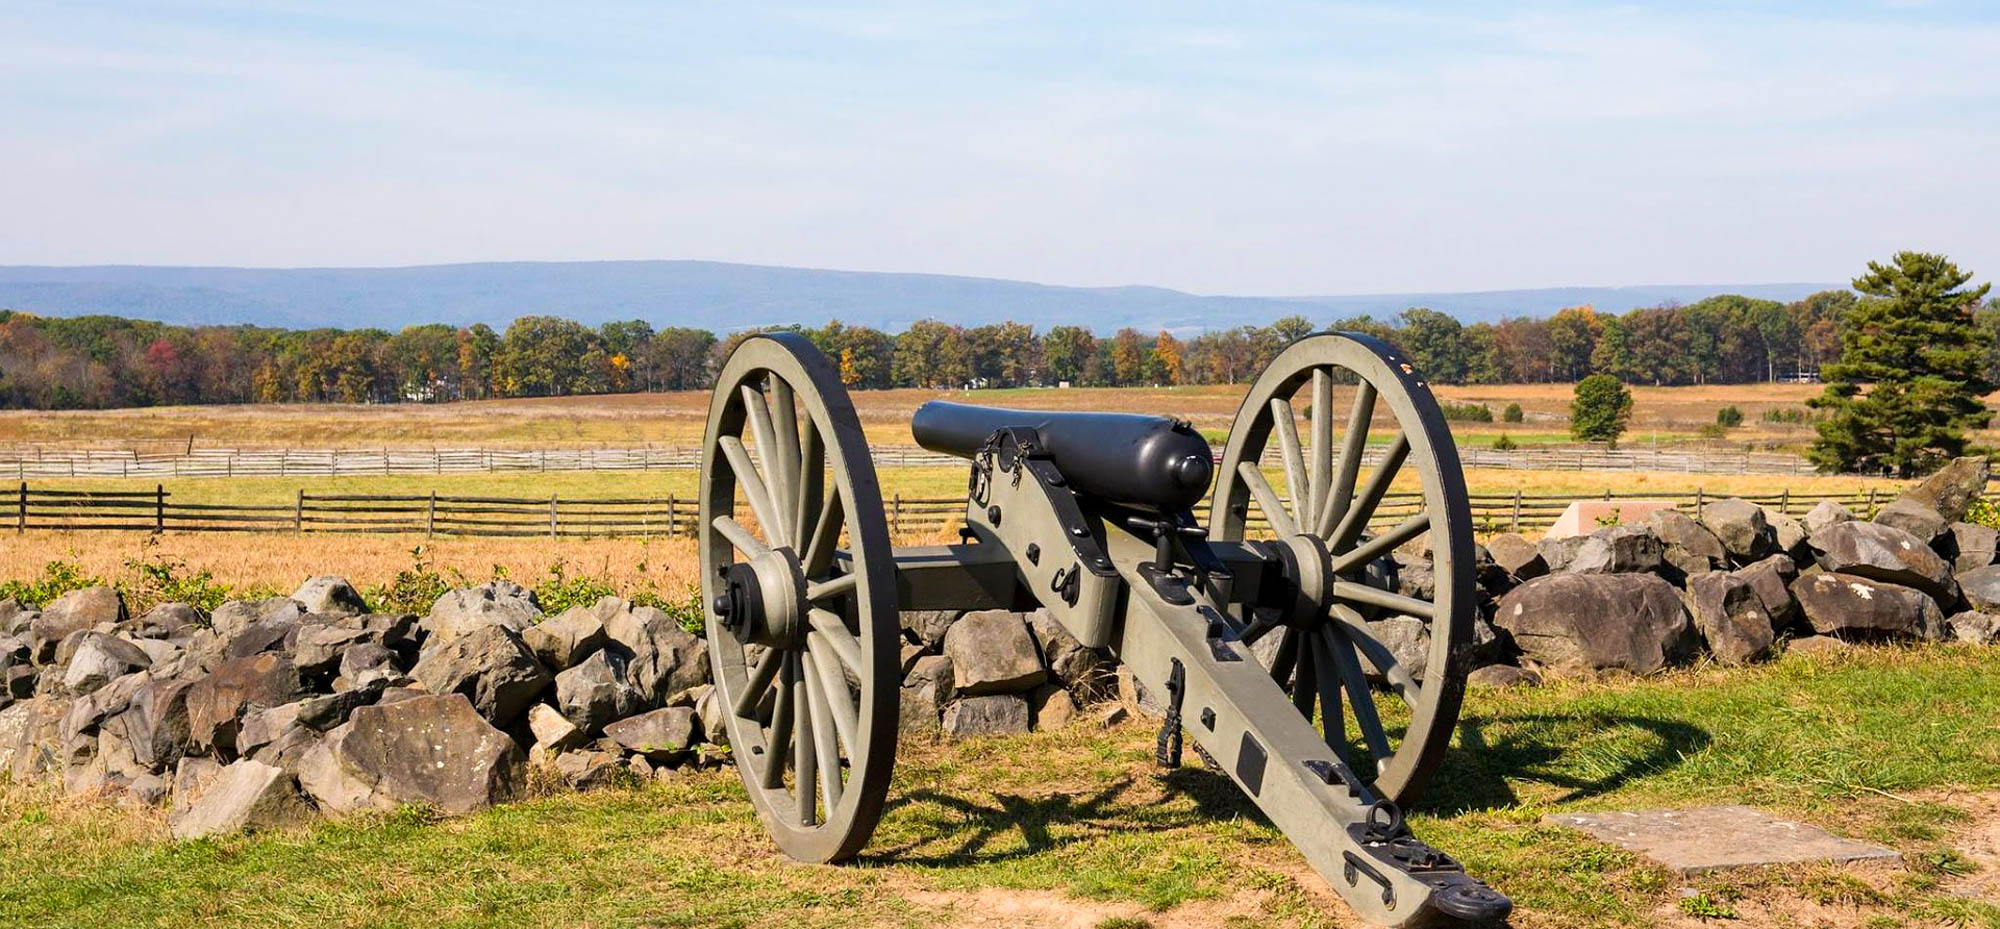 Cannons on the field at Gettysburg